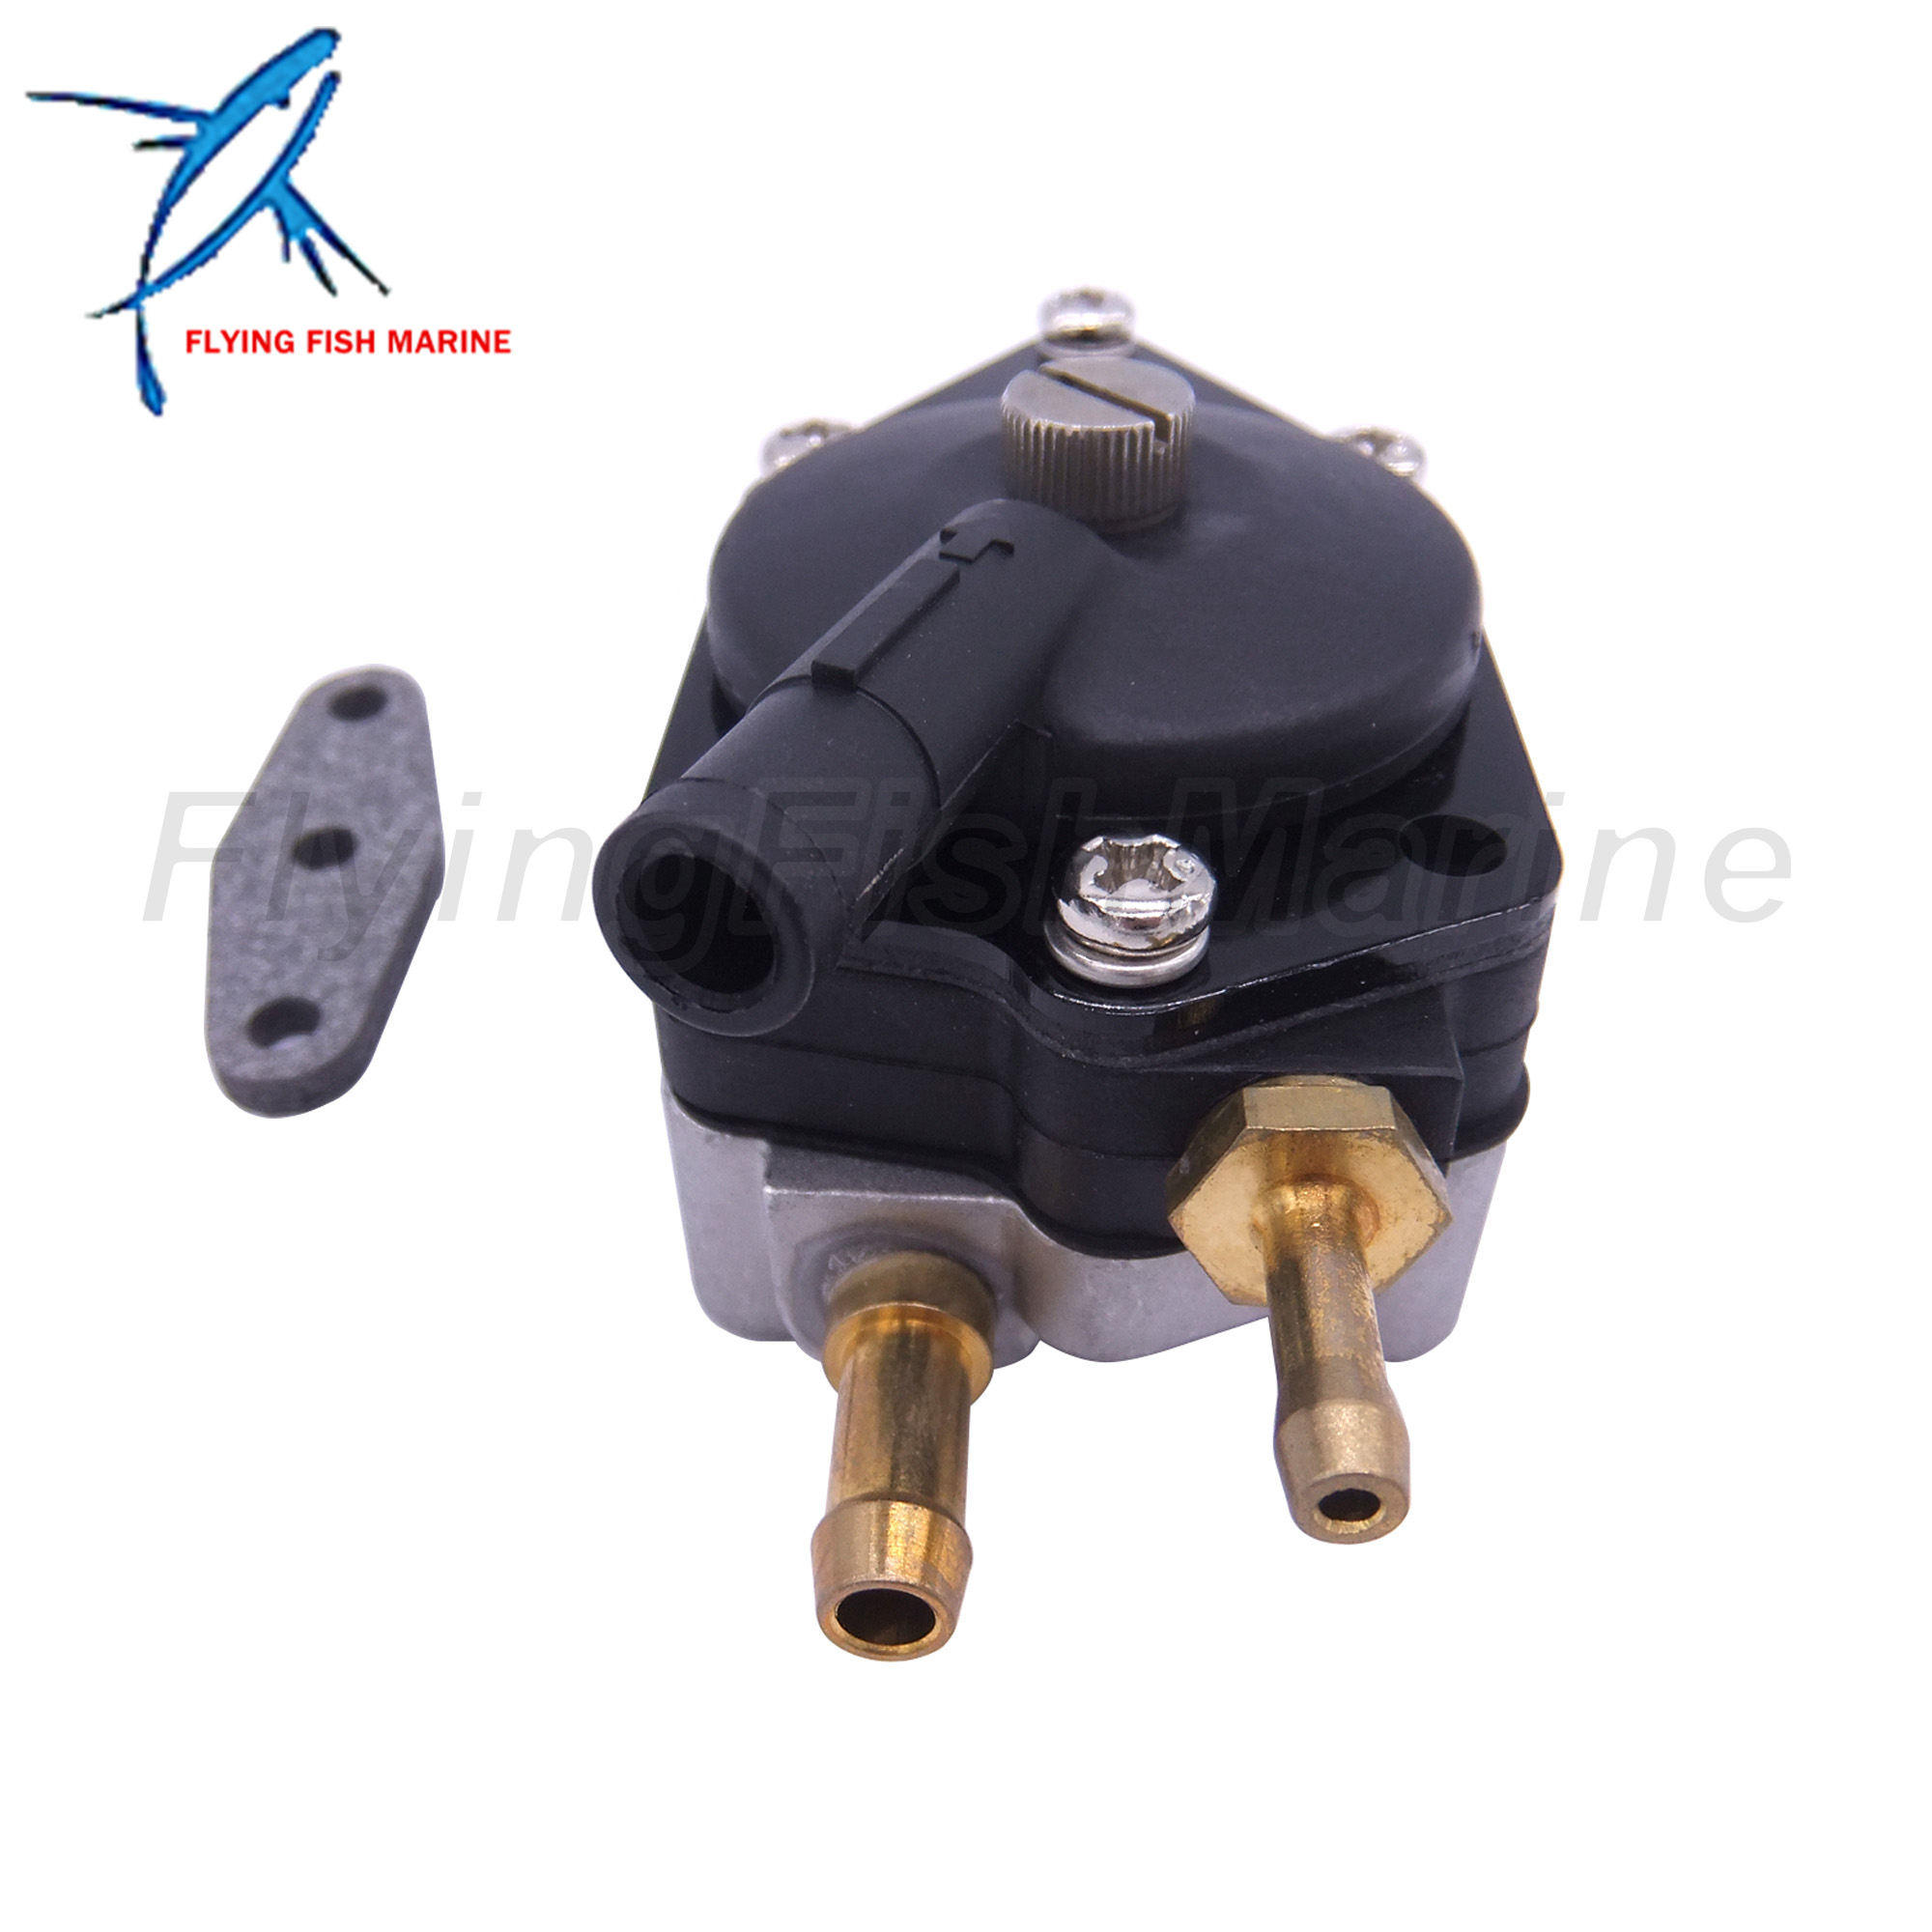 New Outboard Fuel Pump W//Gasket Fit for 20-140HP Replaces 438556 UK